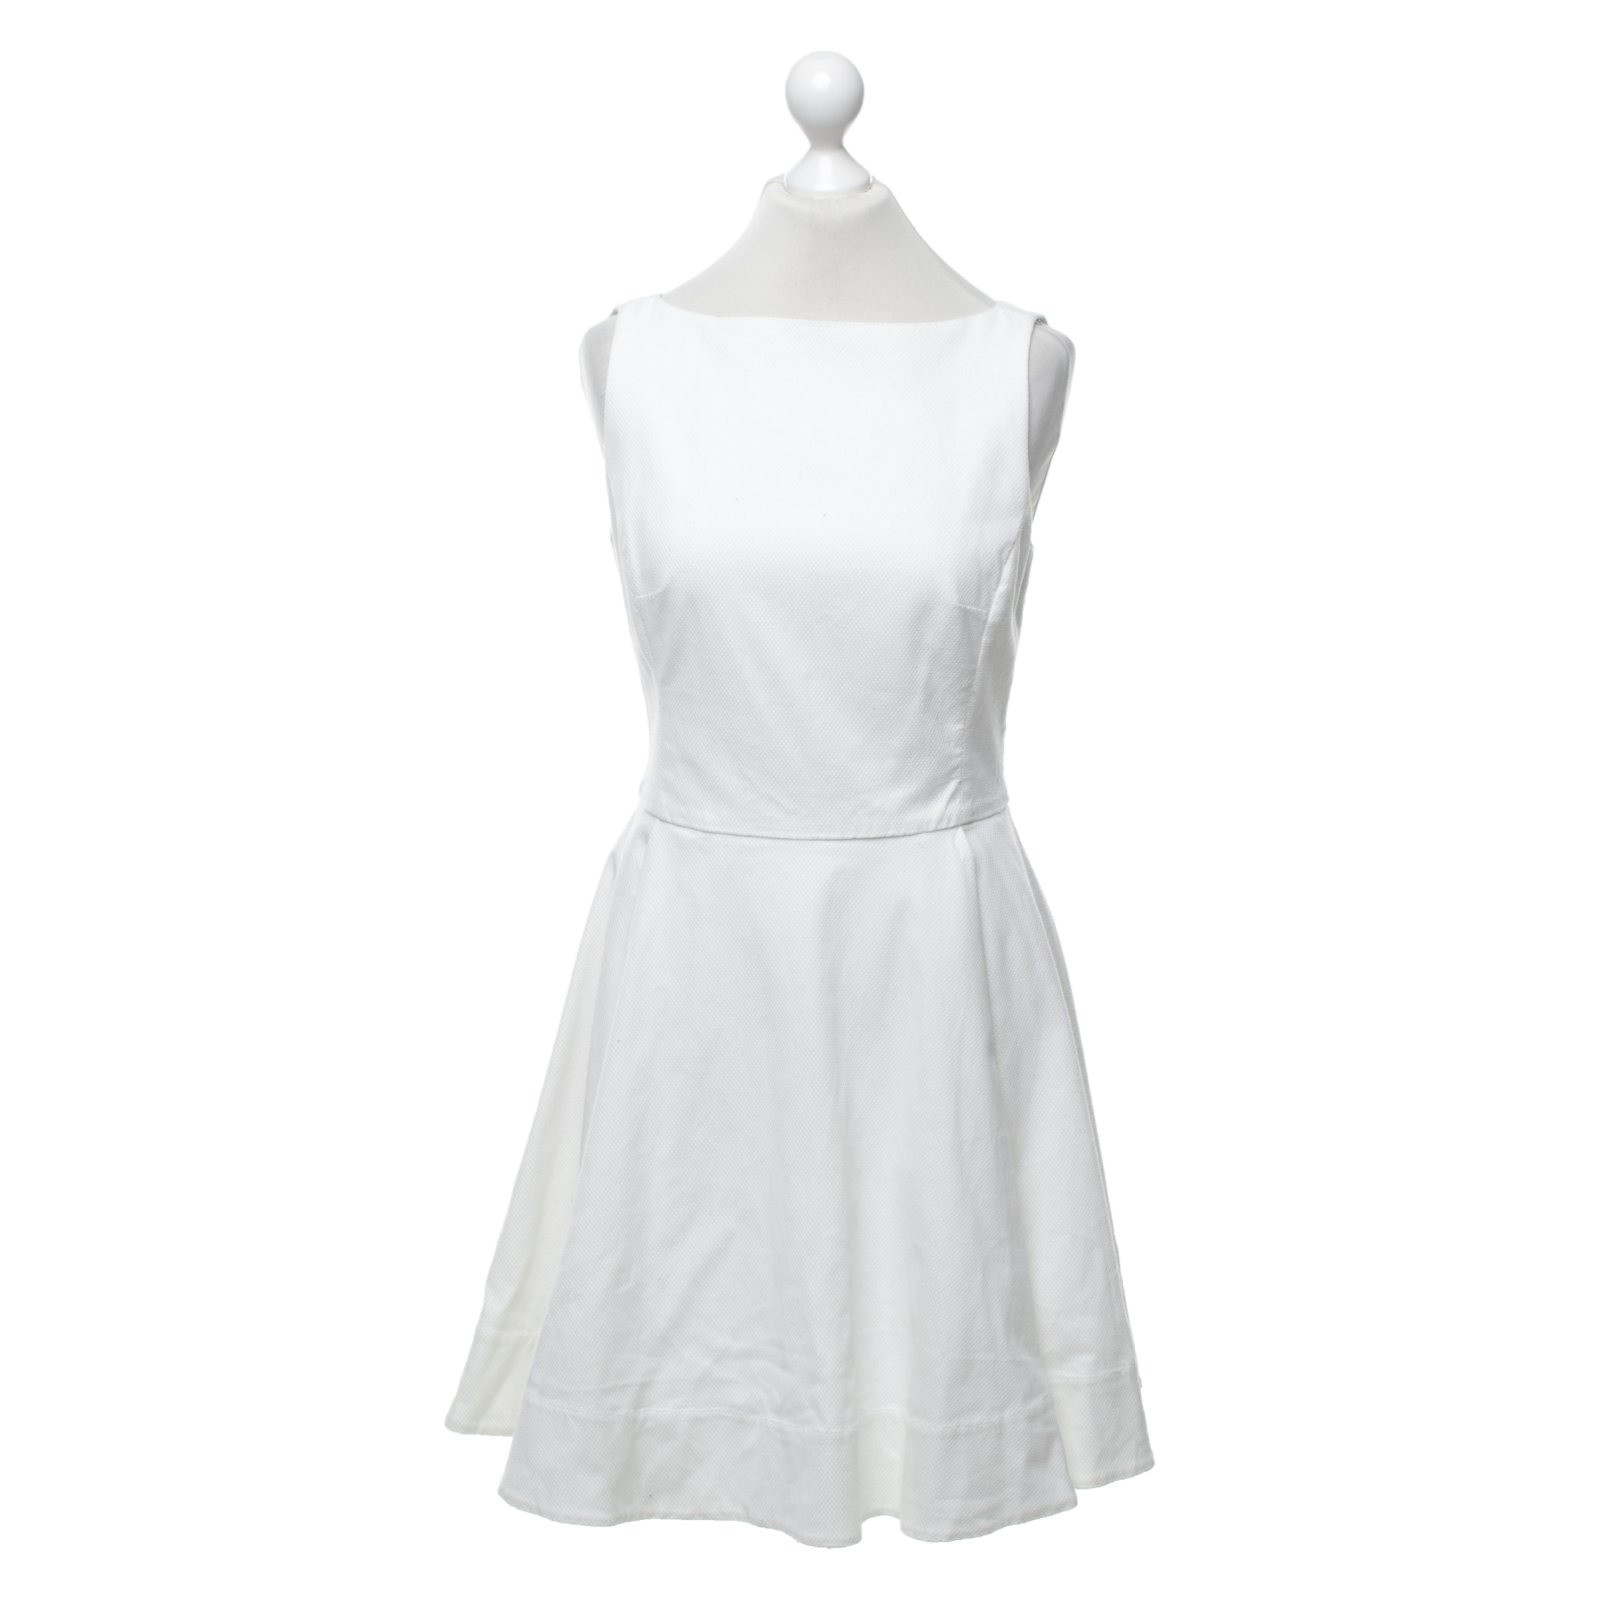 Polo Ralph Lauren Dress Cotton in White - Second Hand Polo Ralph